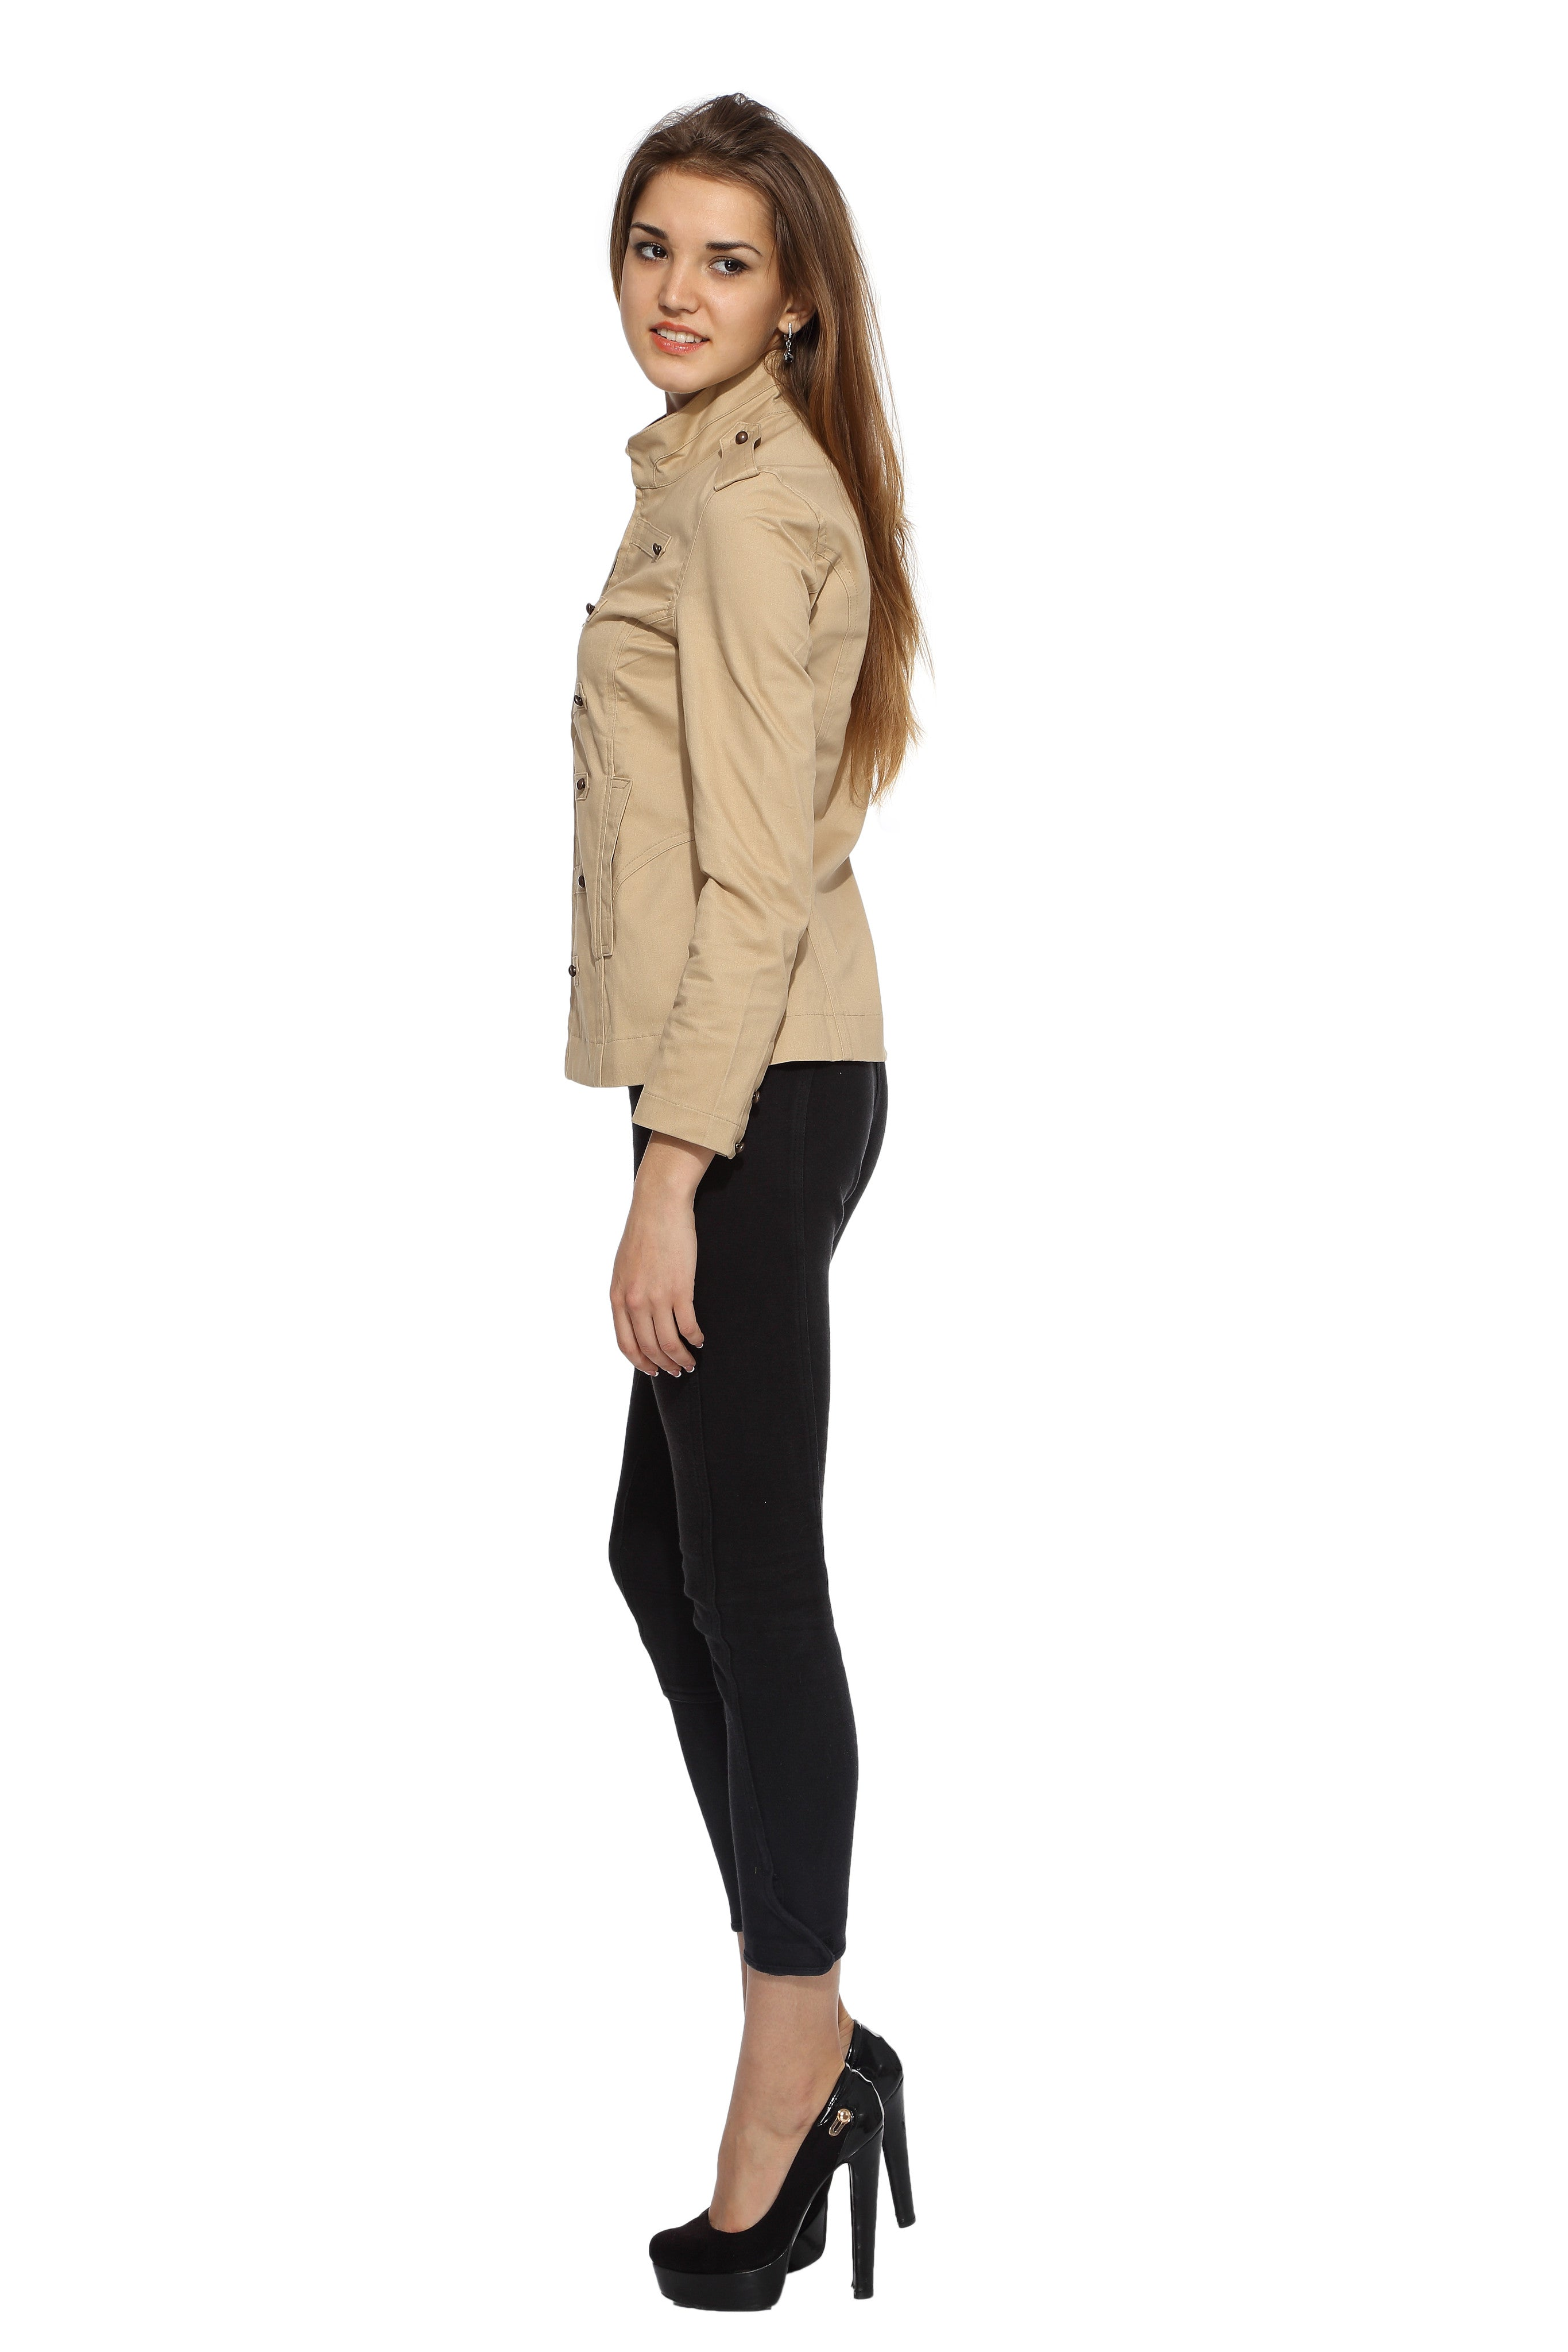 Military Jacket in Khaki Side